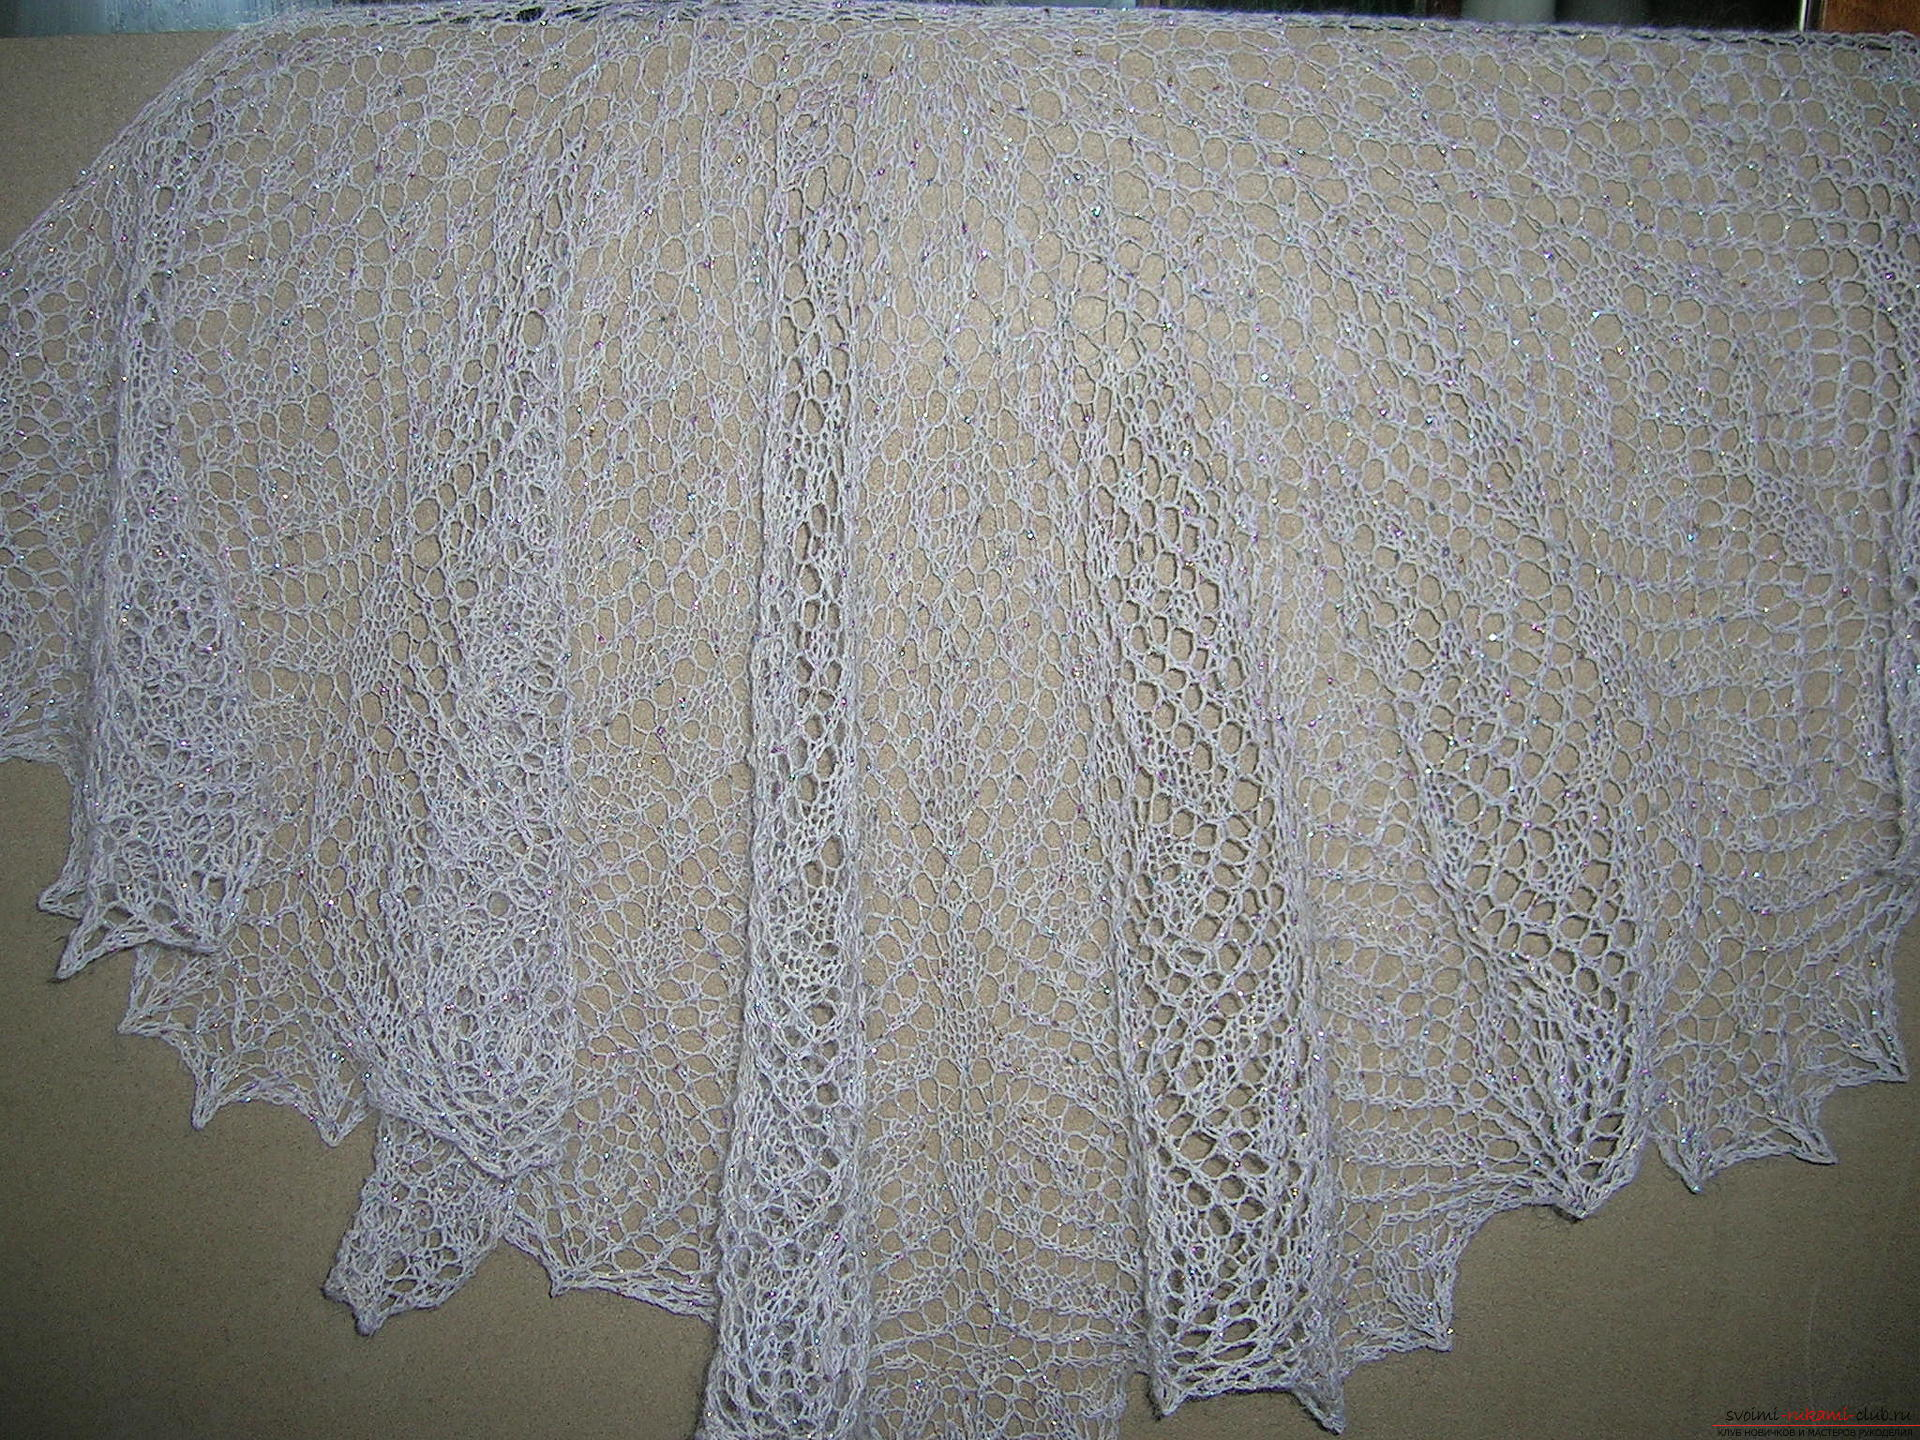 Description knitting the openwork white shawls with knitting needles. Photo # 2